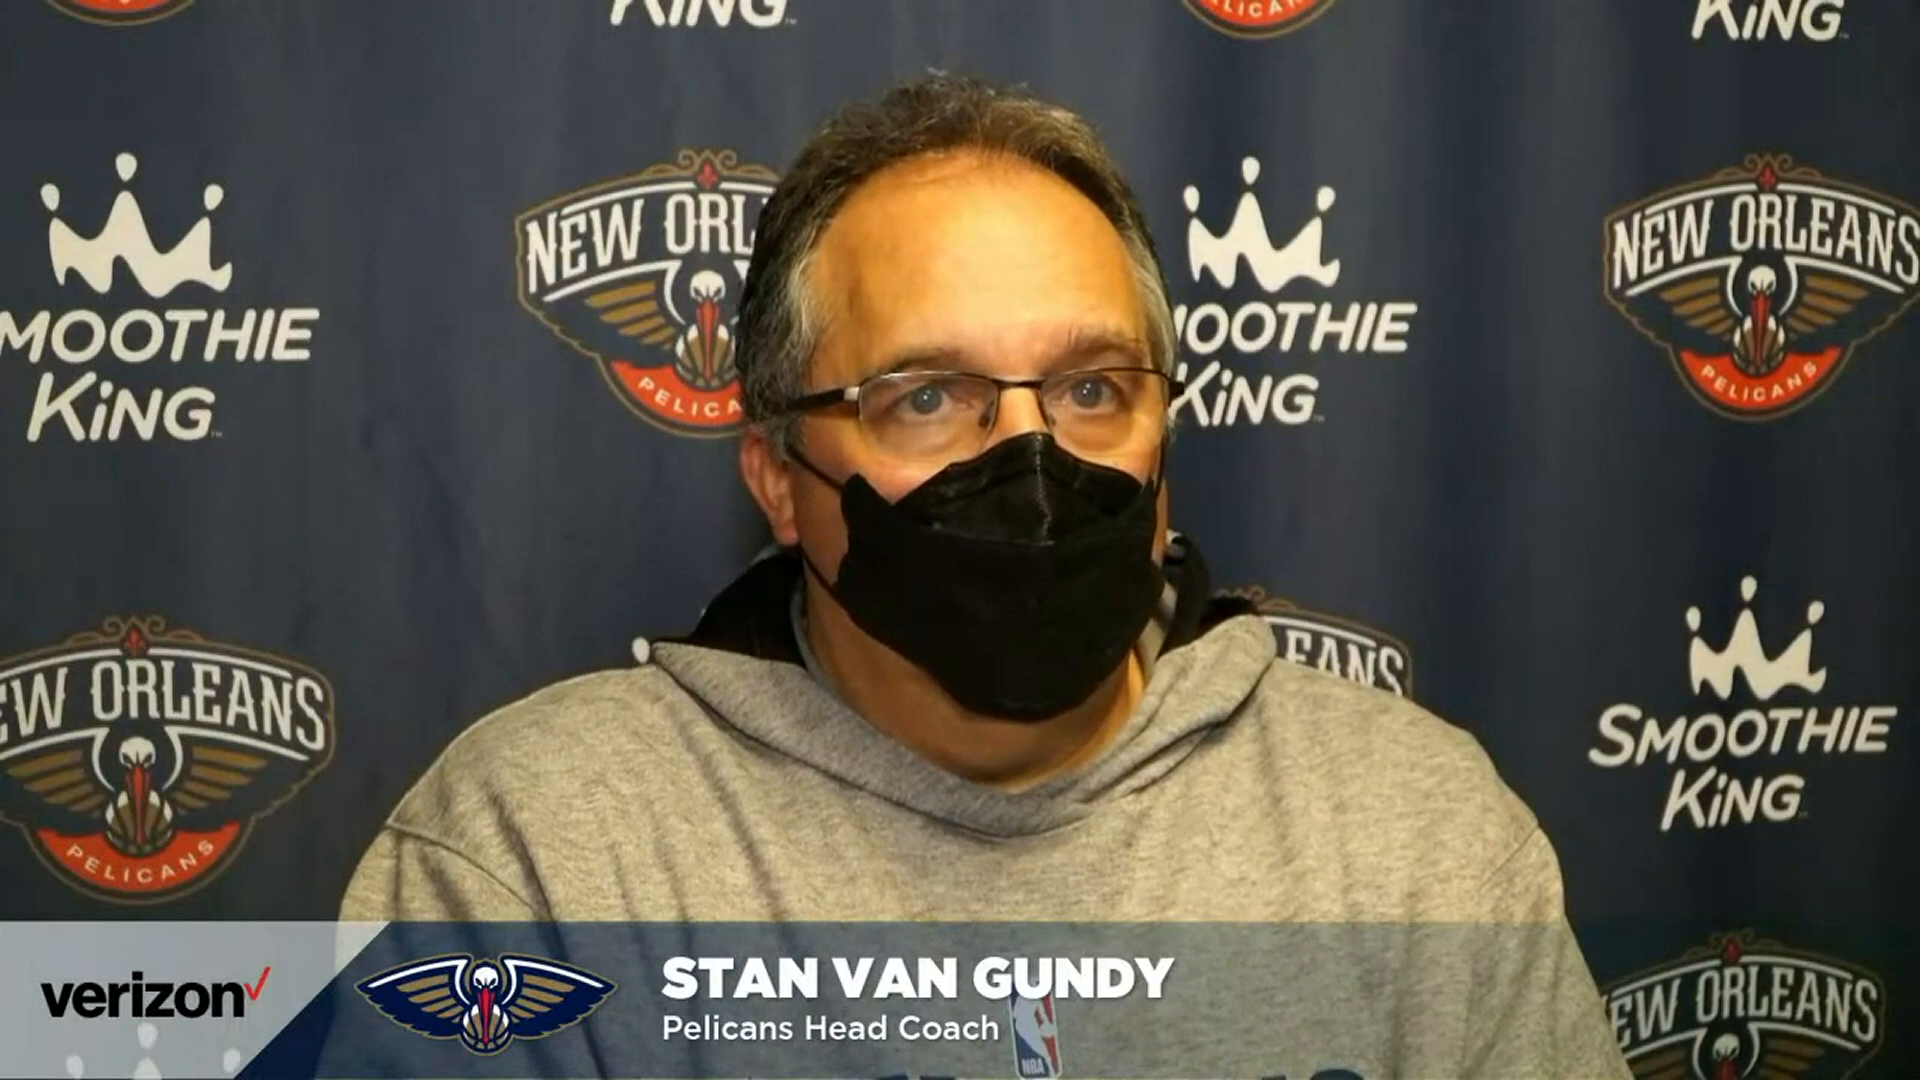 Pelicans-Magic Postgame Interview: Stan Van Gundy 4-22-21